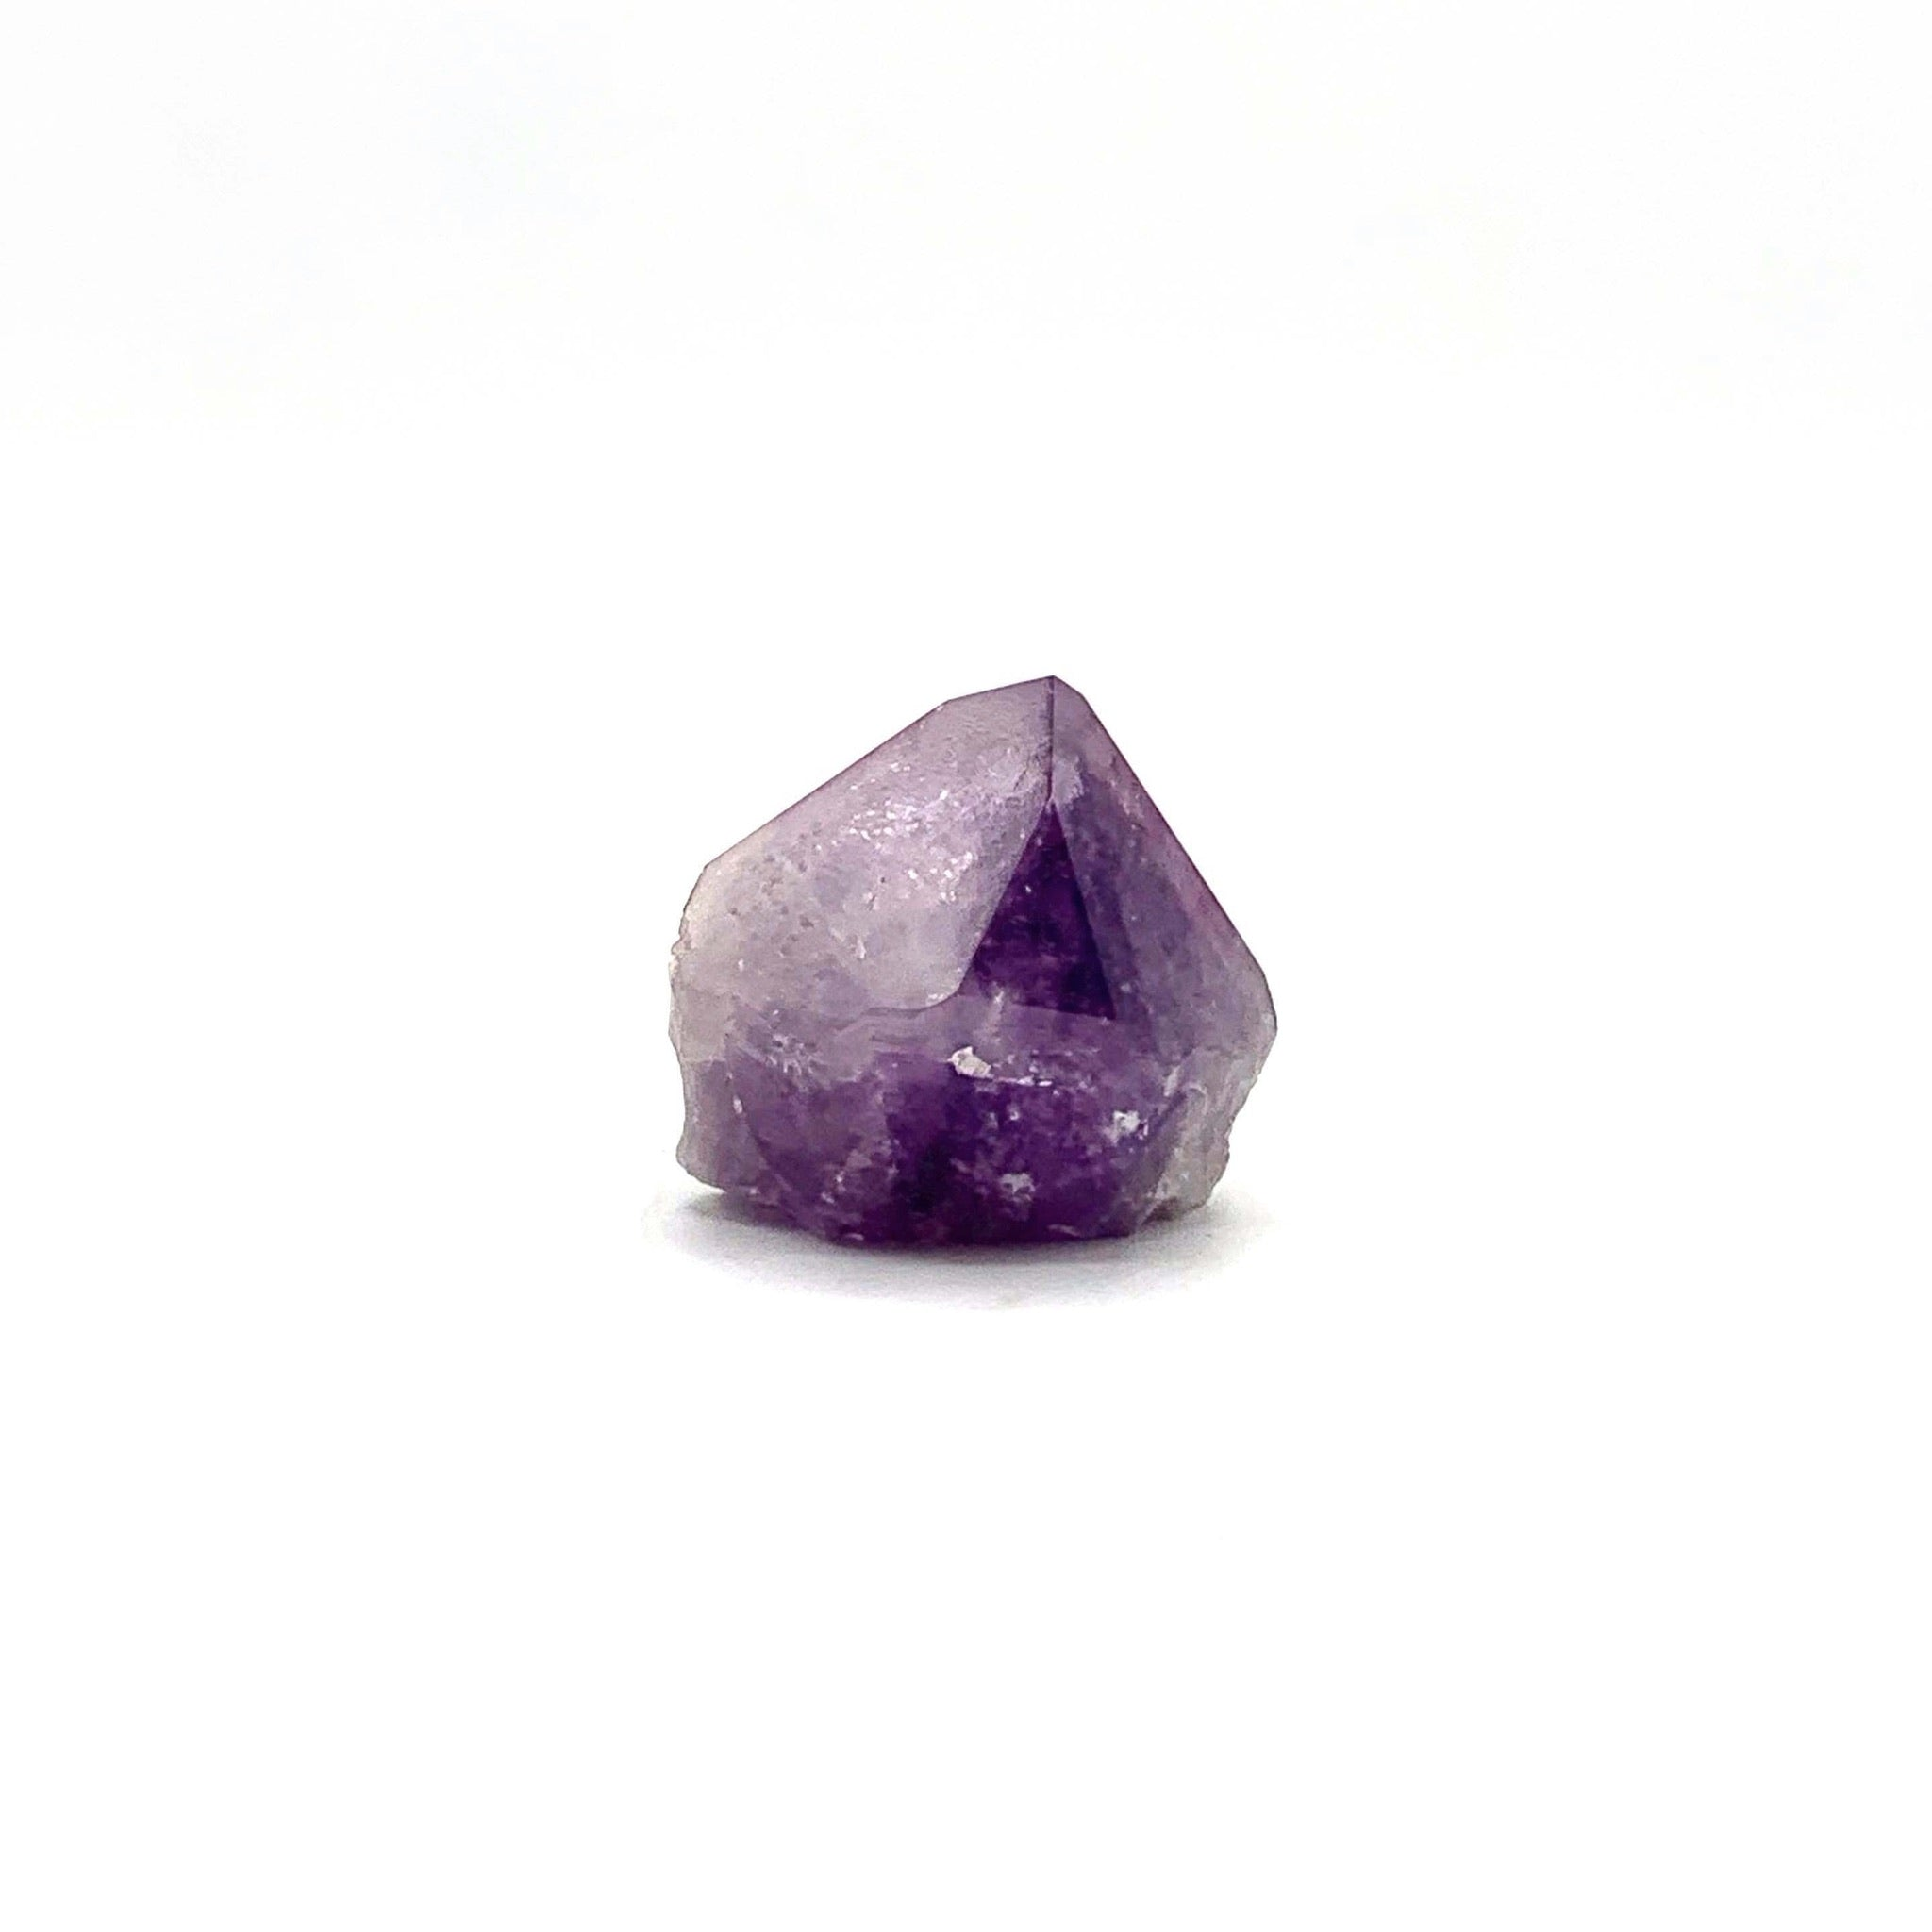 Polished Amethyst Point w/ Rough Base